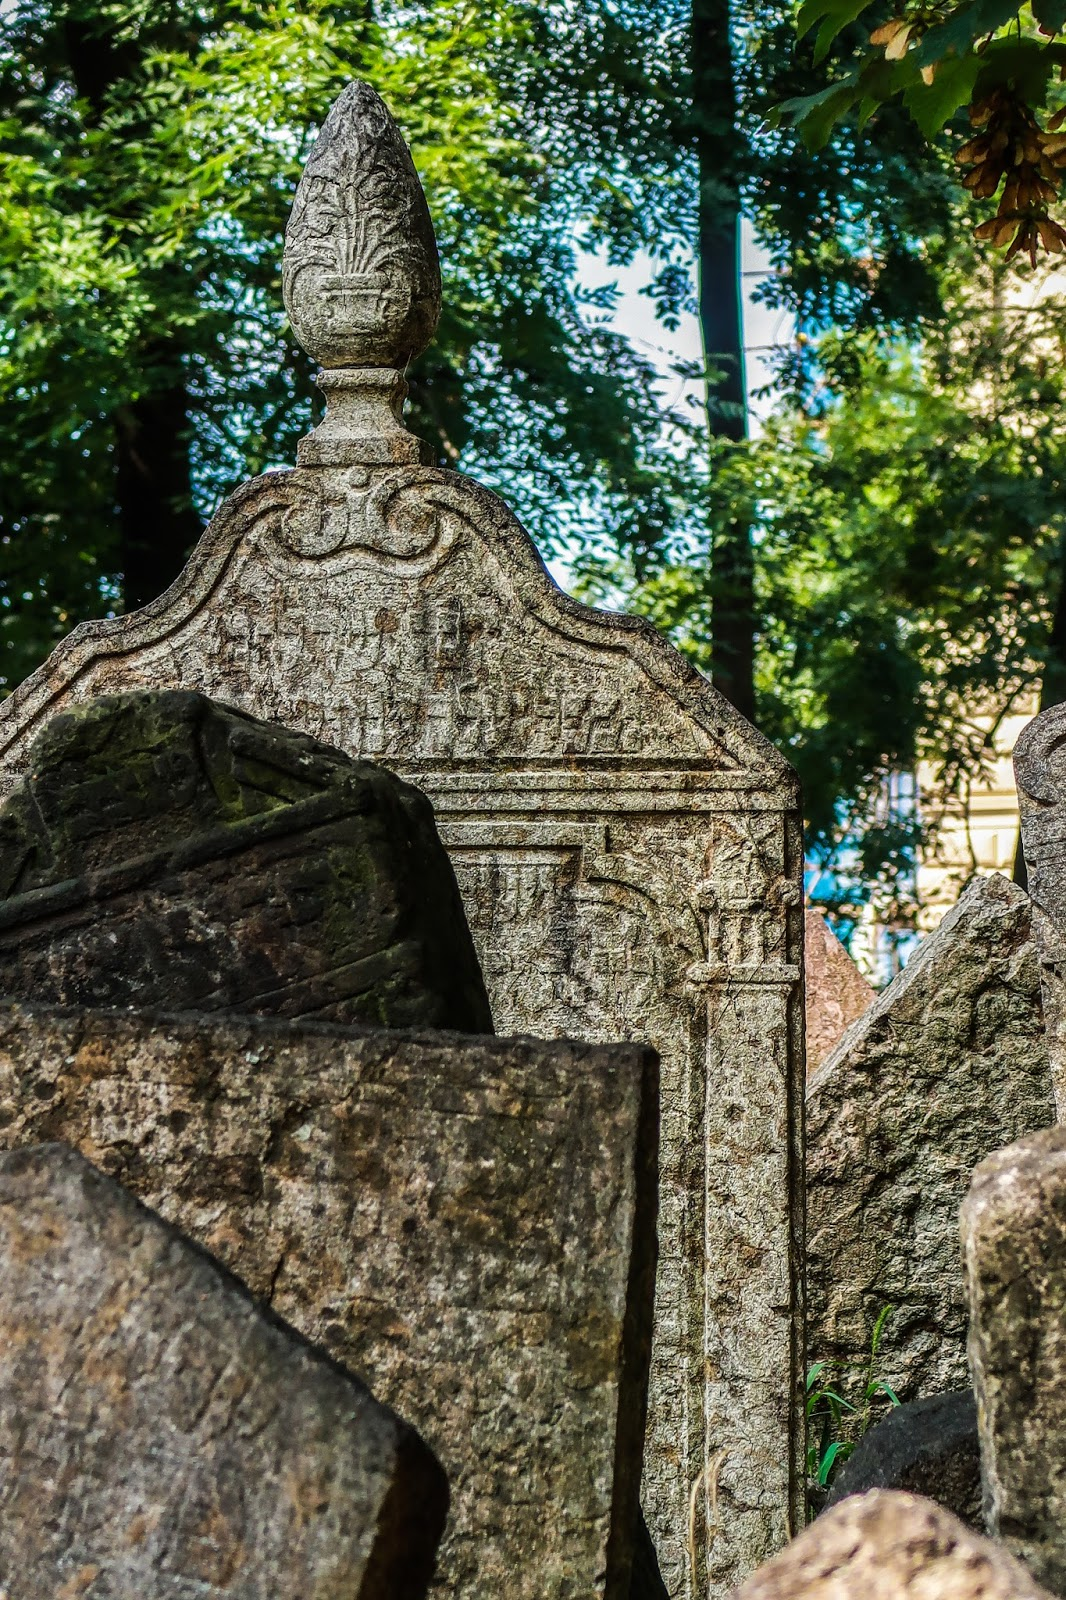 The Jewish Quarter & Cemetery in Prague